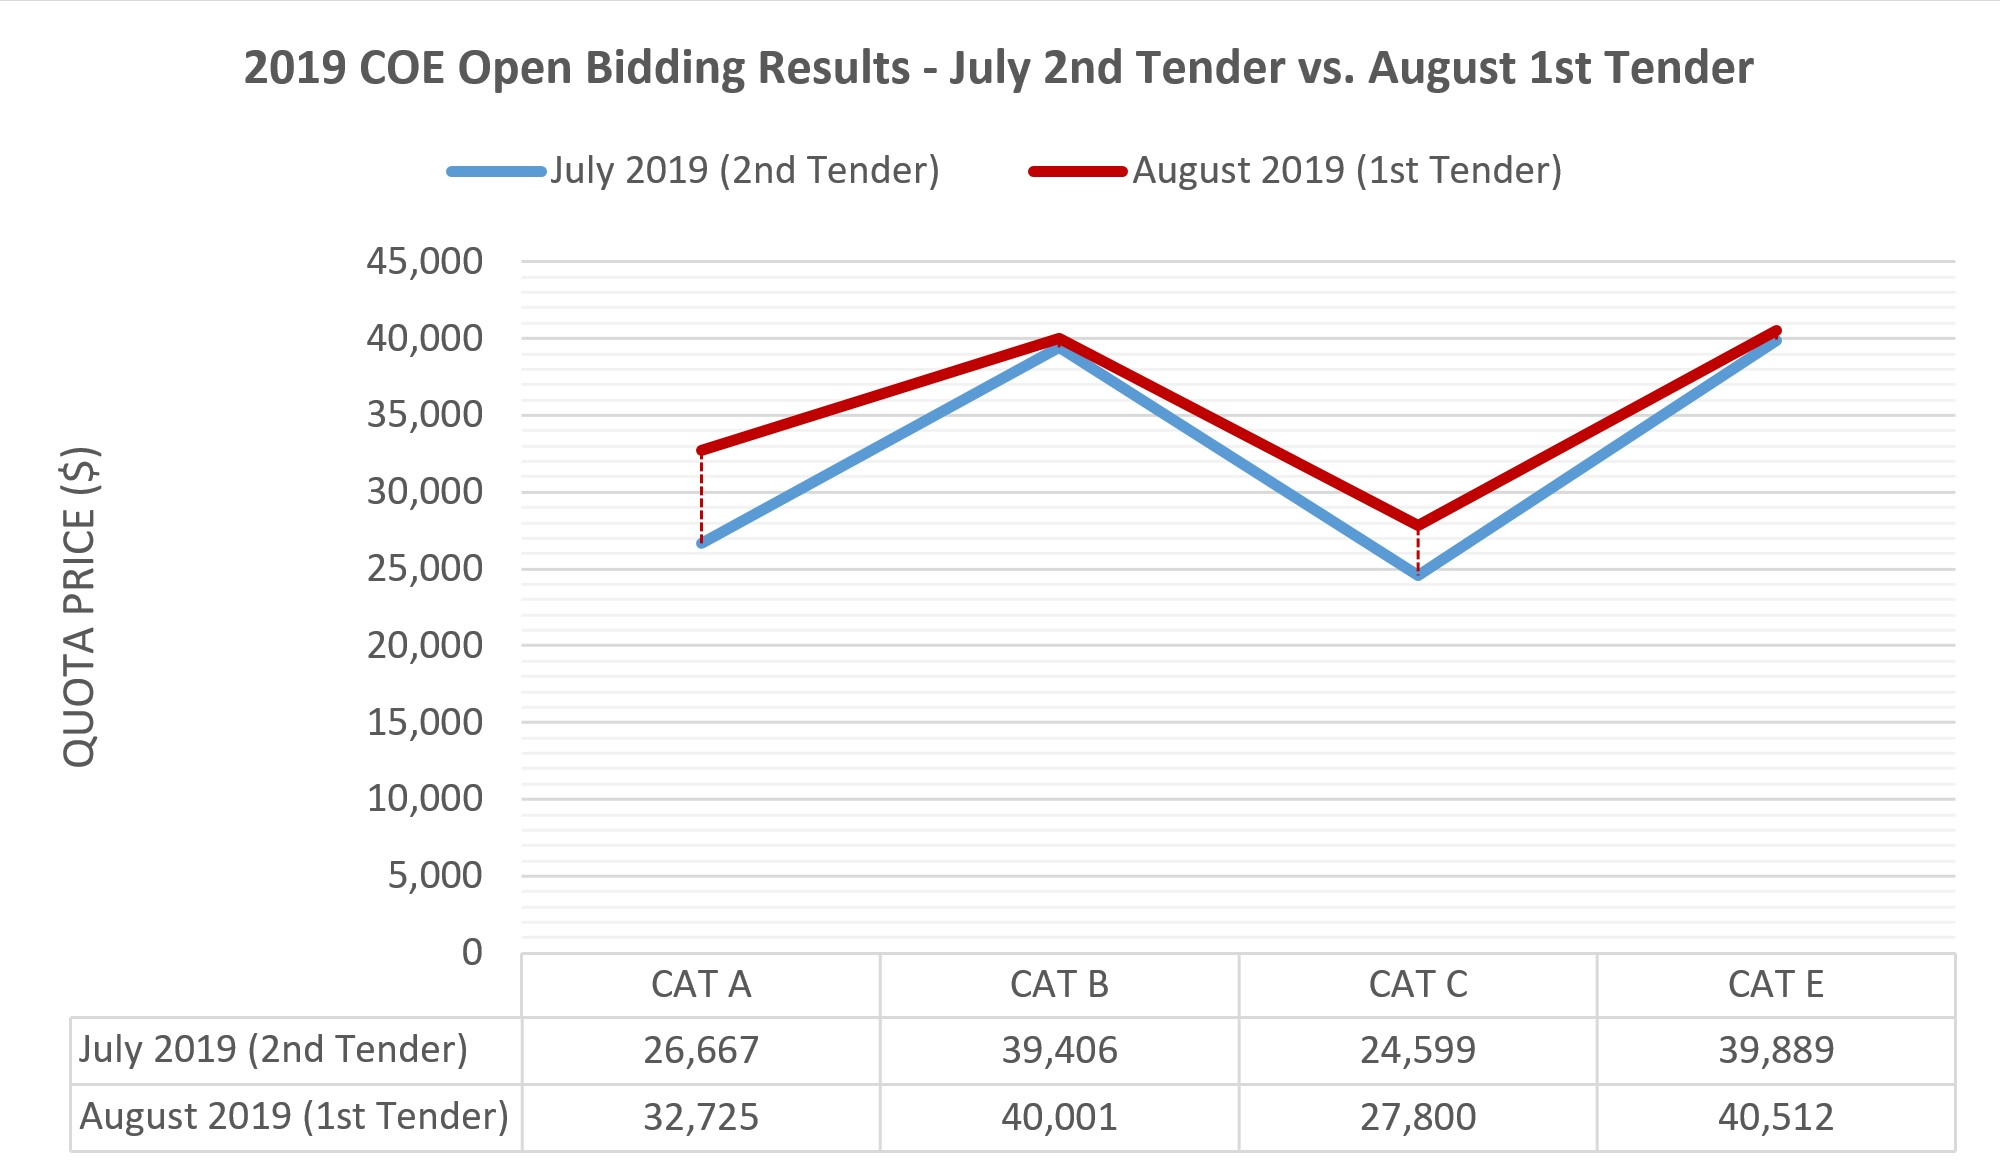 COE Bidding Results July 2019 2nd Tender Versus August 1st Tender Graph